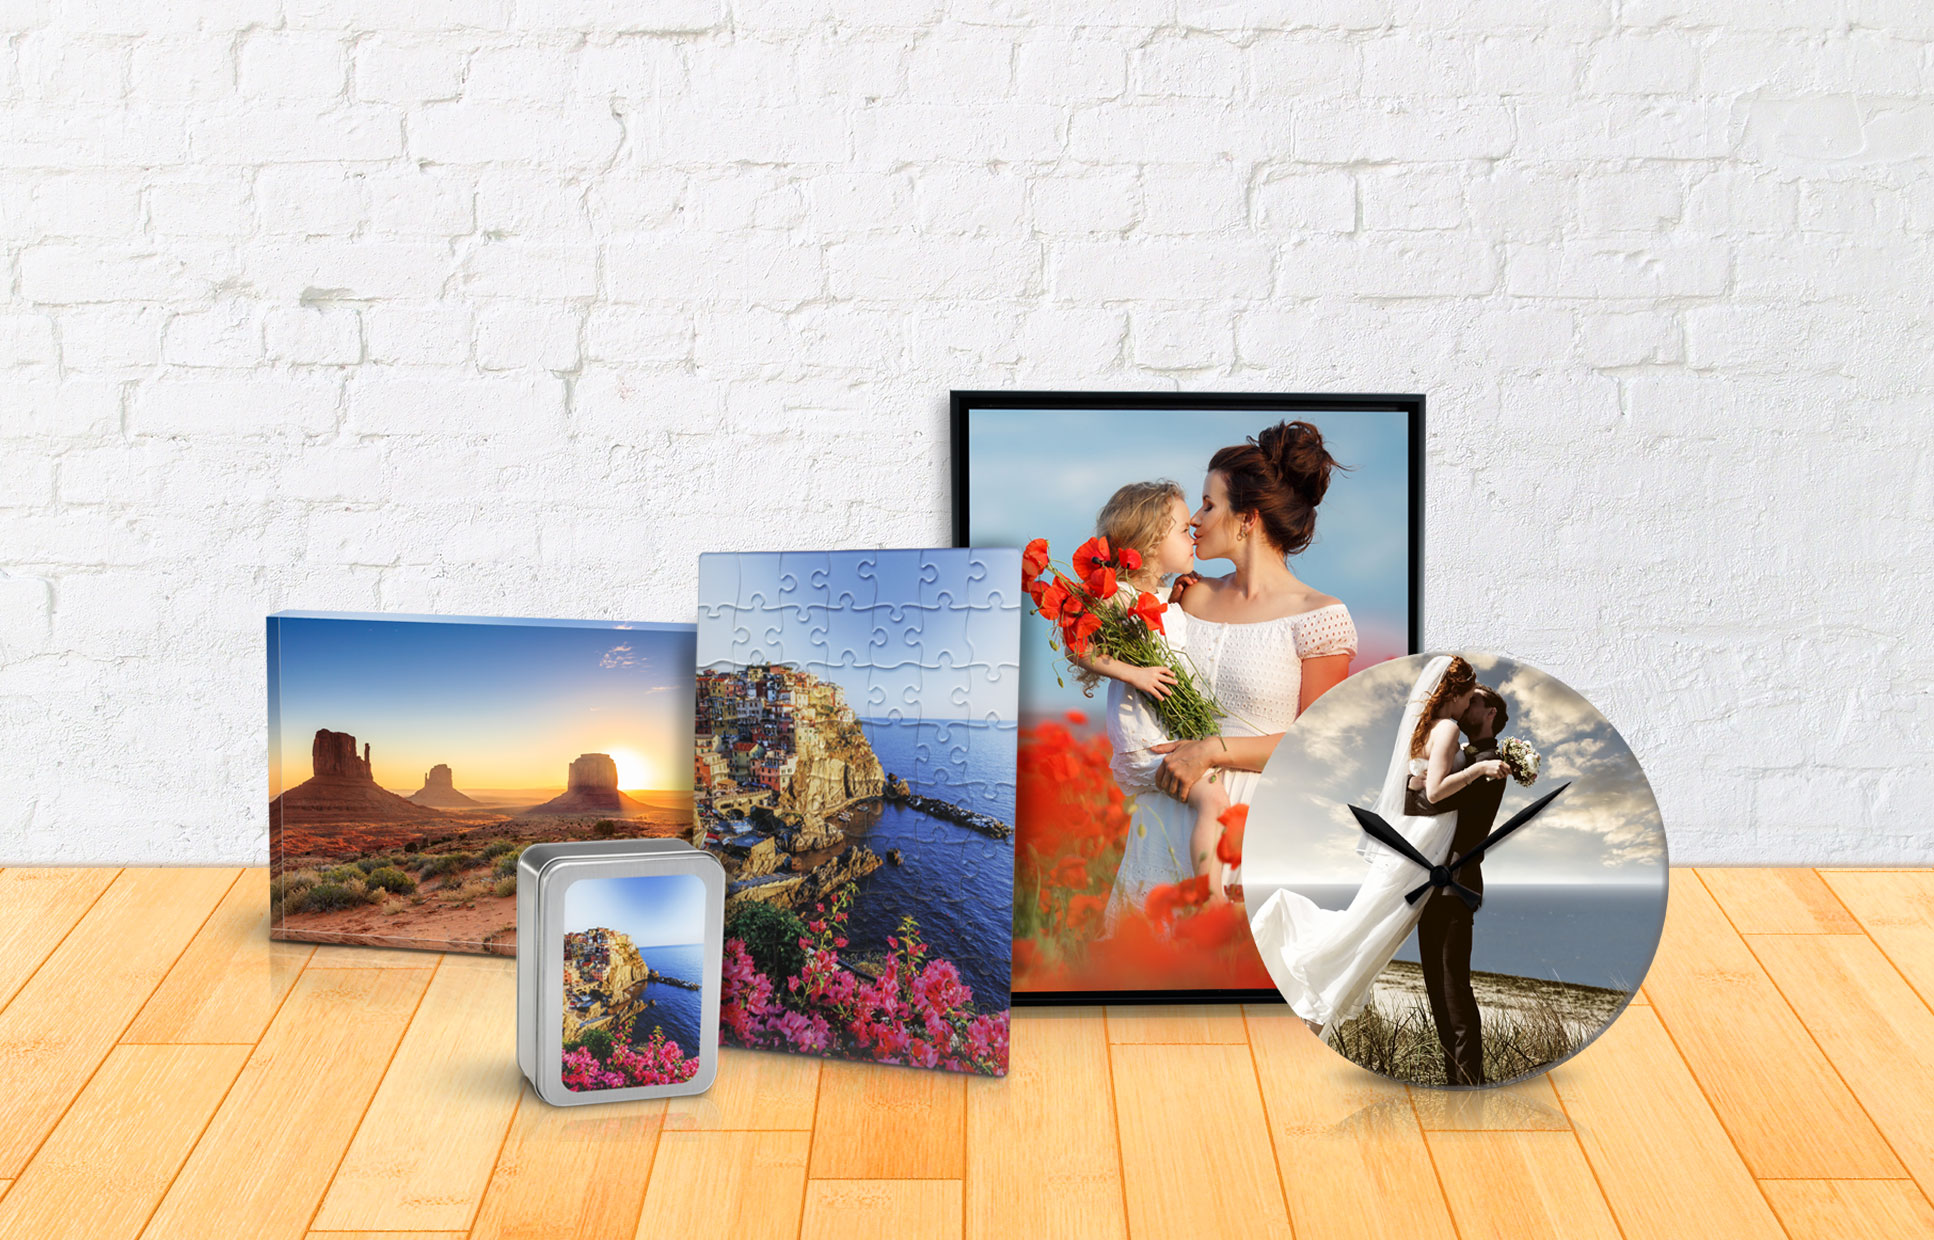 Elegant Capture Your Cherished Moments With The Dynamic Color And Detail Of Acrylic  Photo Prints From AcrylicPress.com.